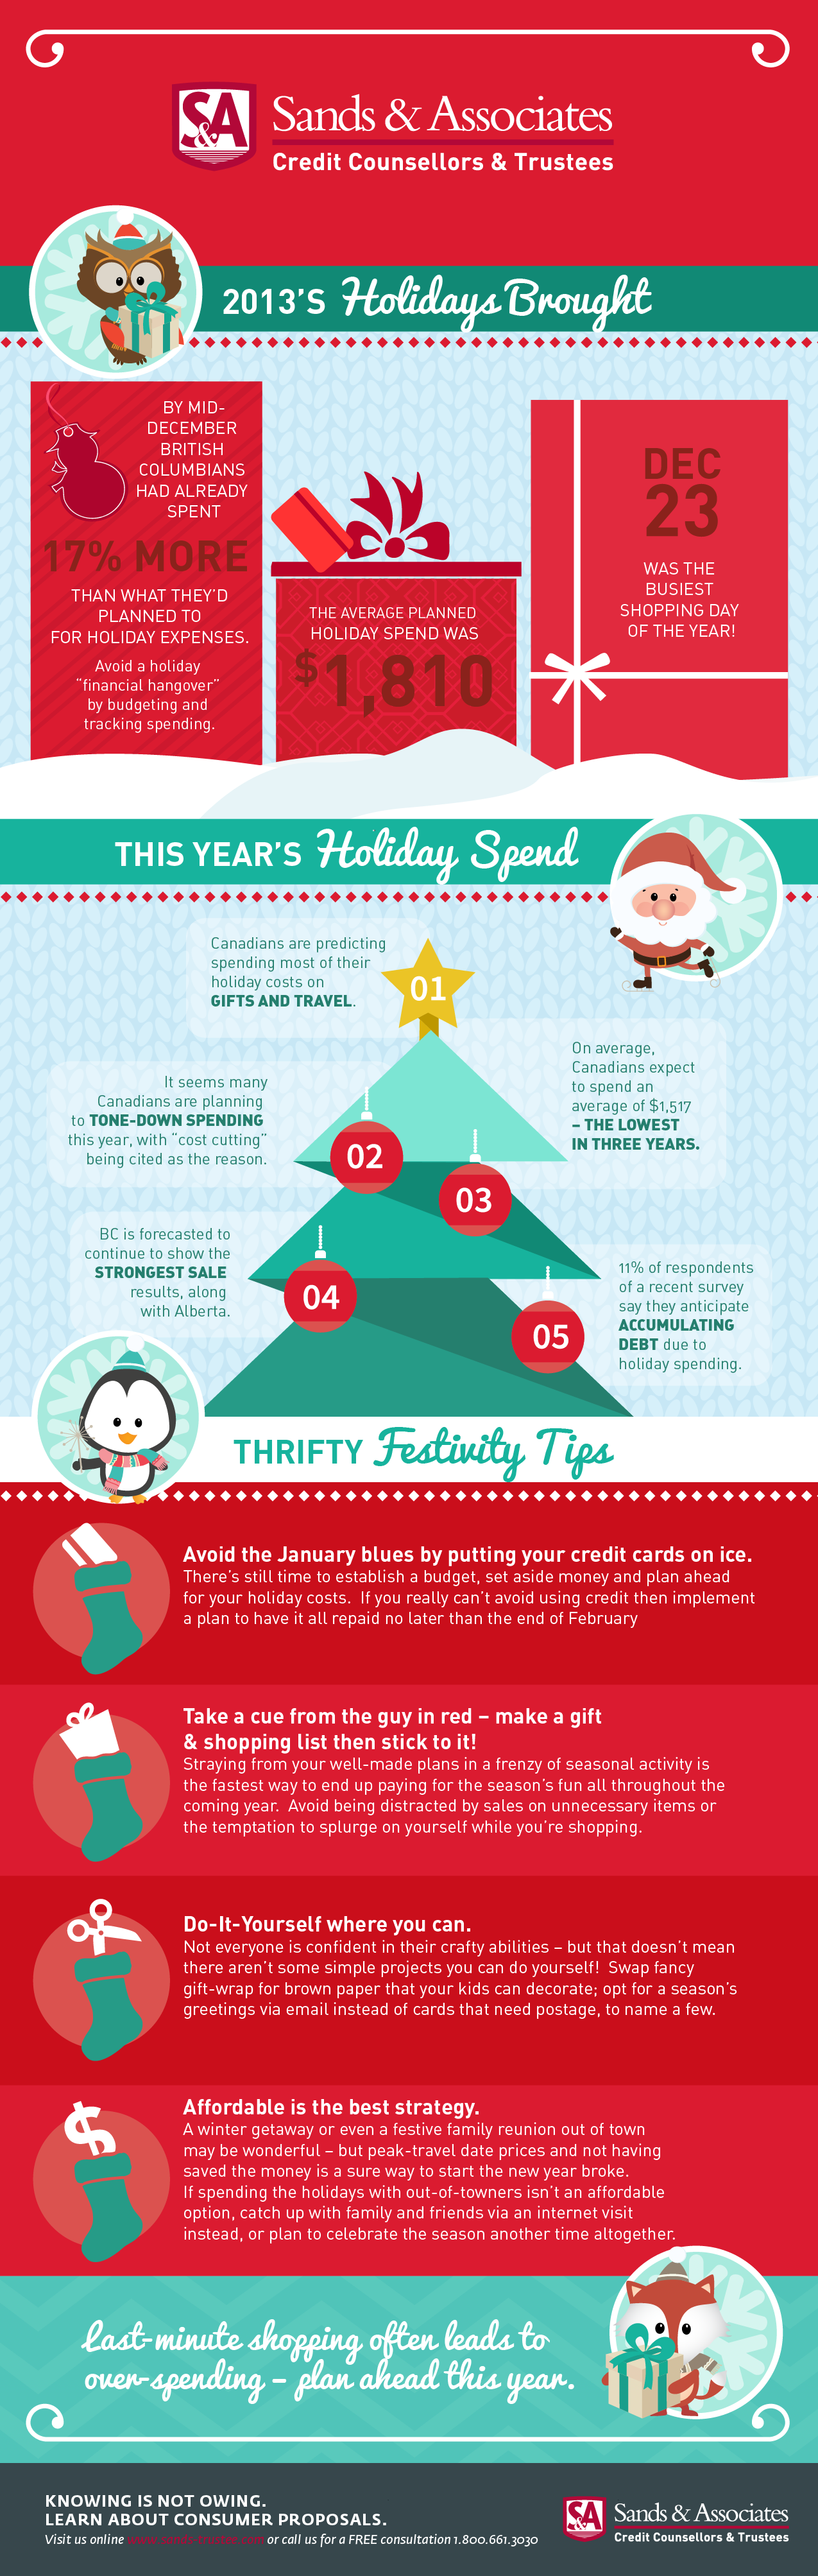 SA_Infographic_Holiday_Final-01